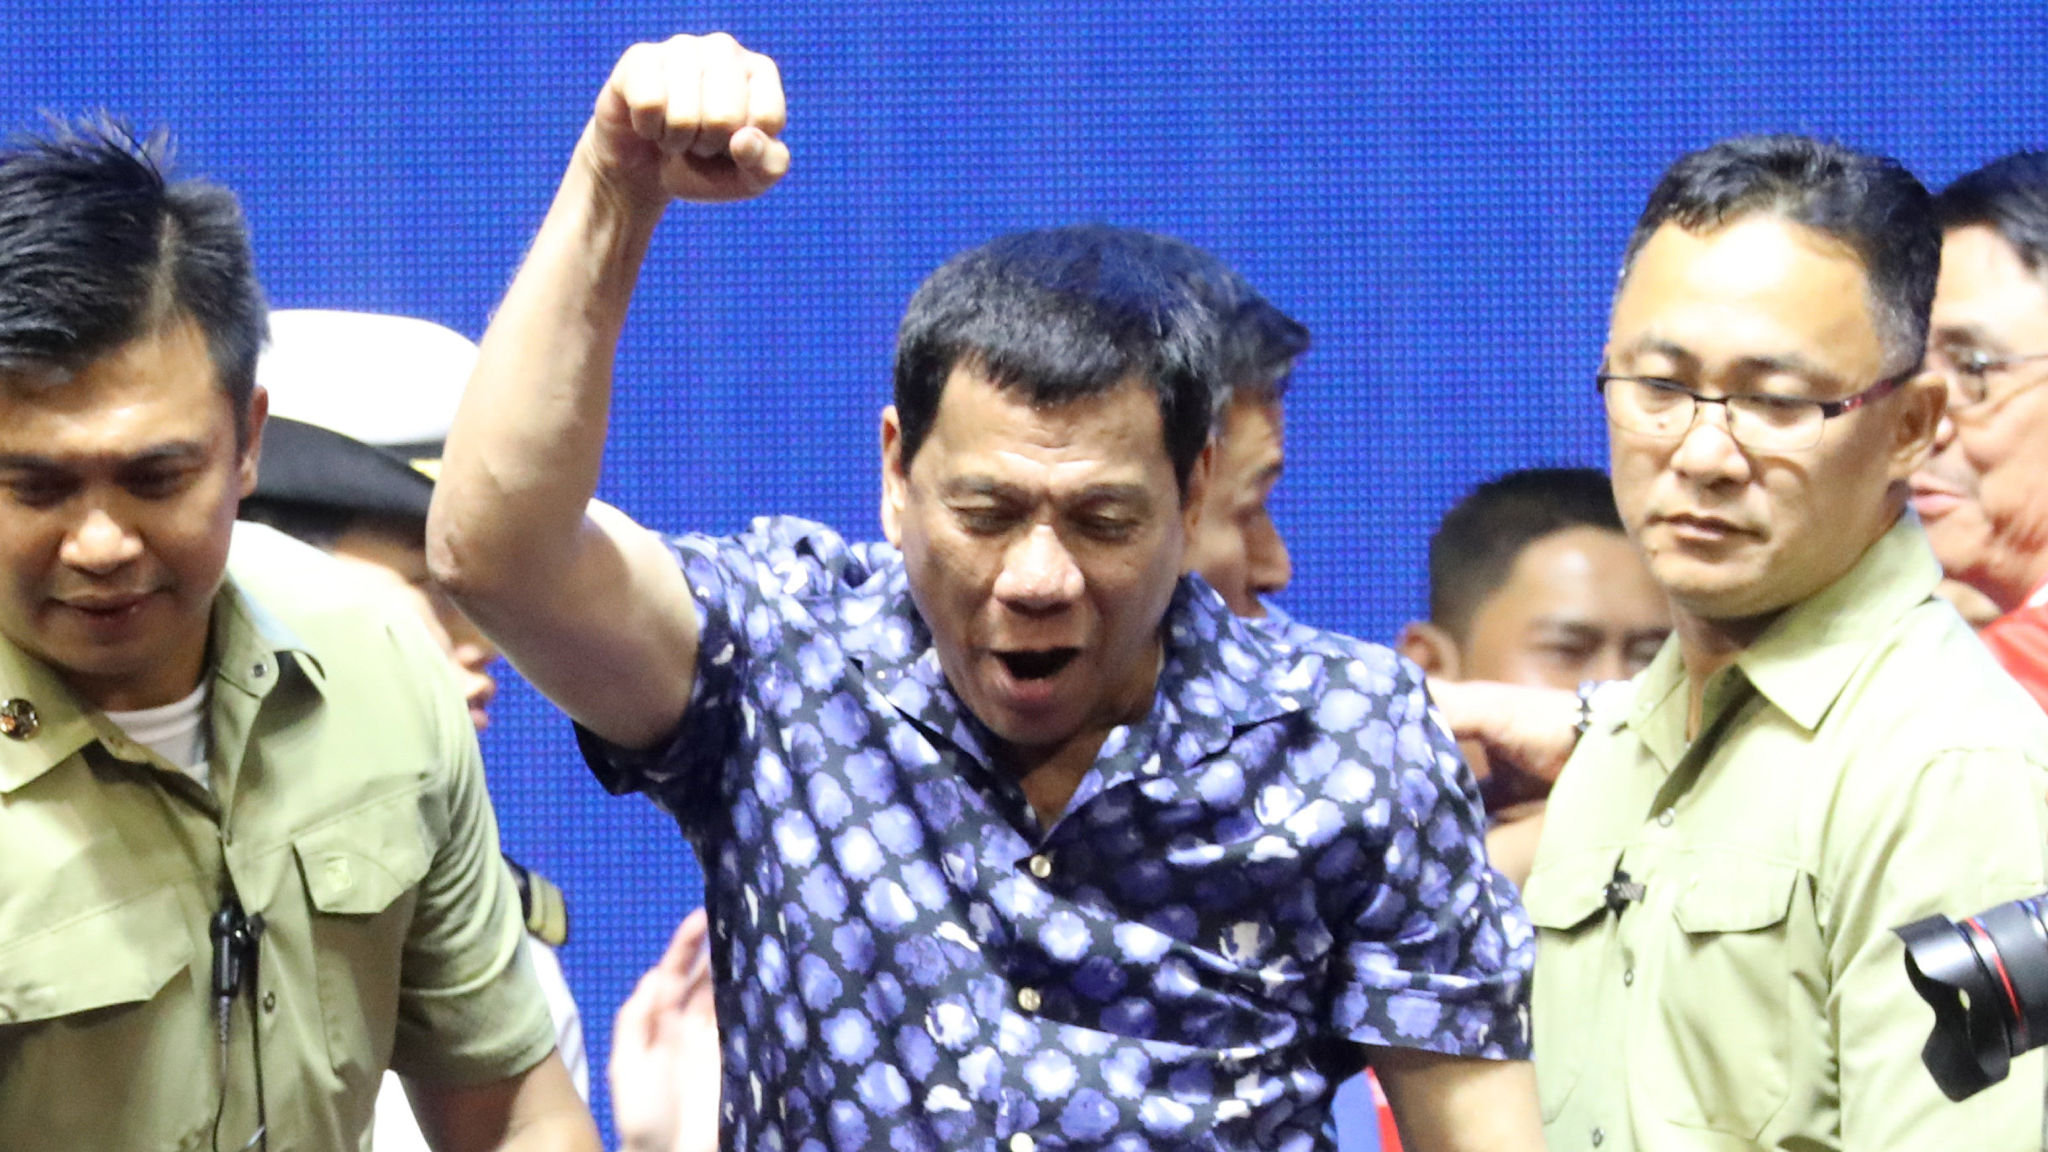 Duterte allies crush opposition in Philippine midterm elections | Financial Times